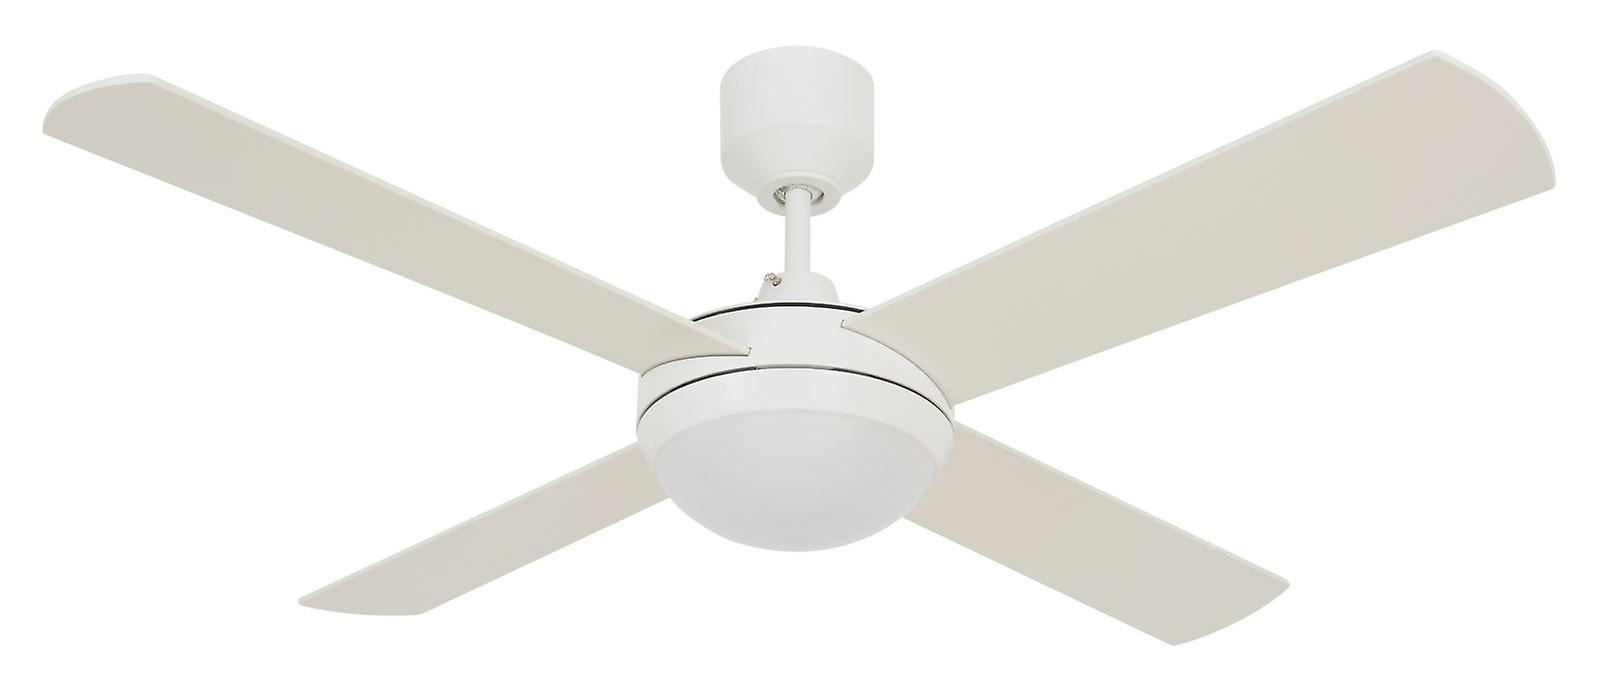 LED ceiling fan Futura Eco blanc with remote control